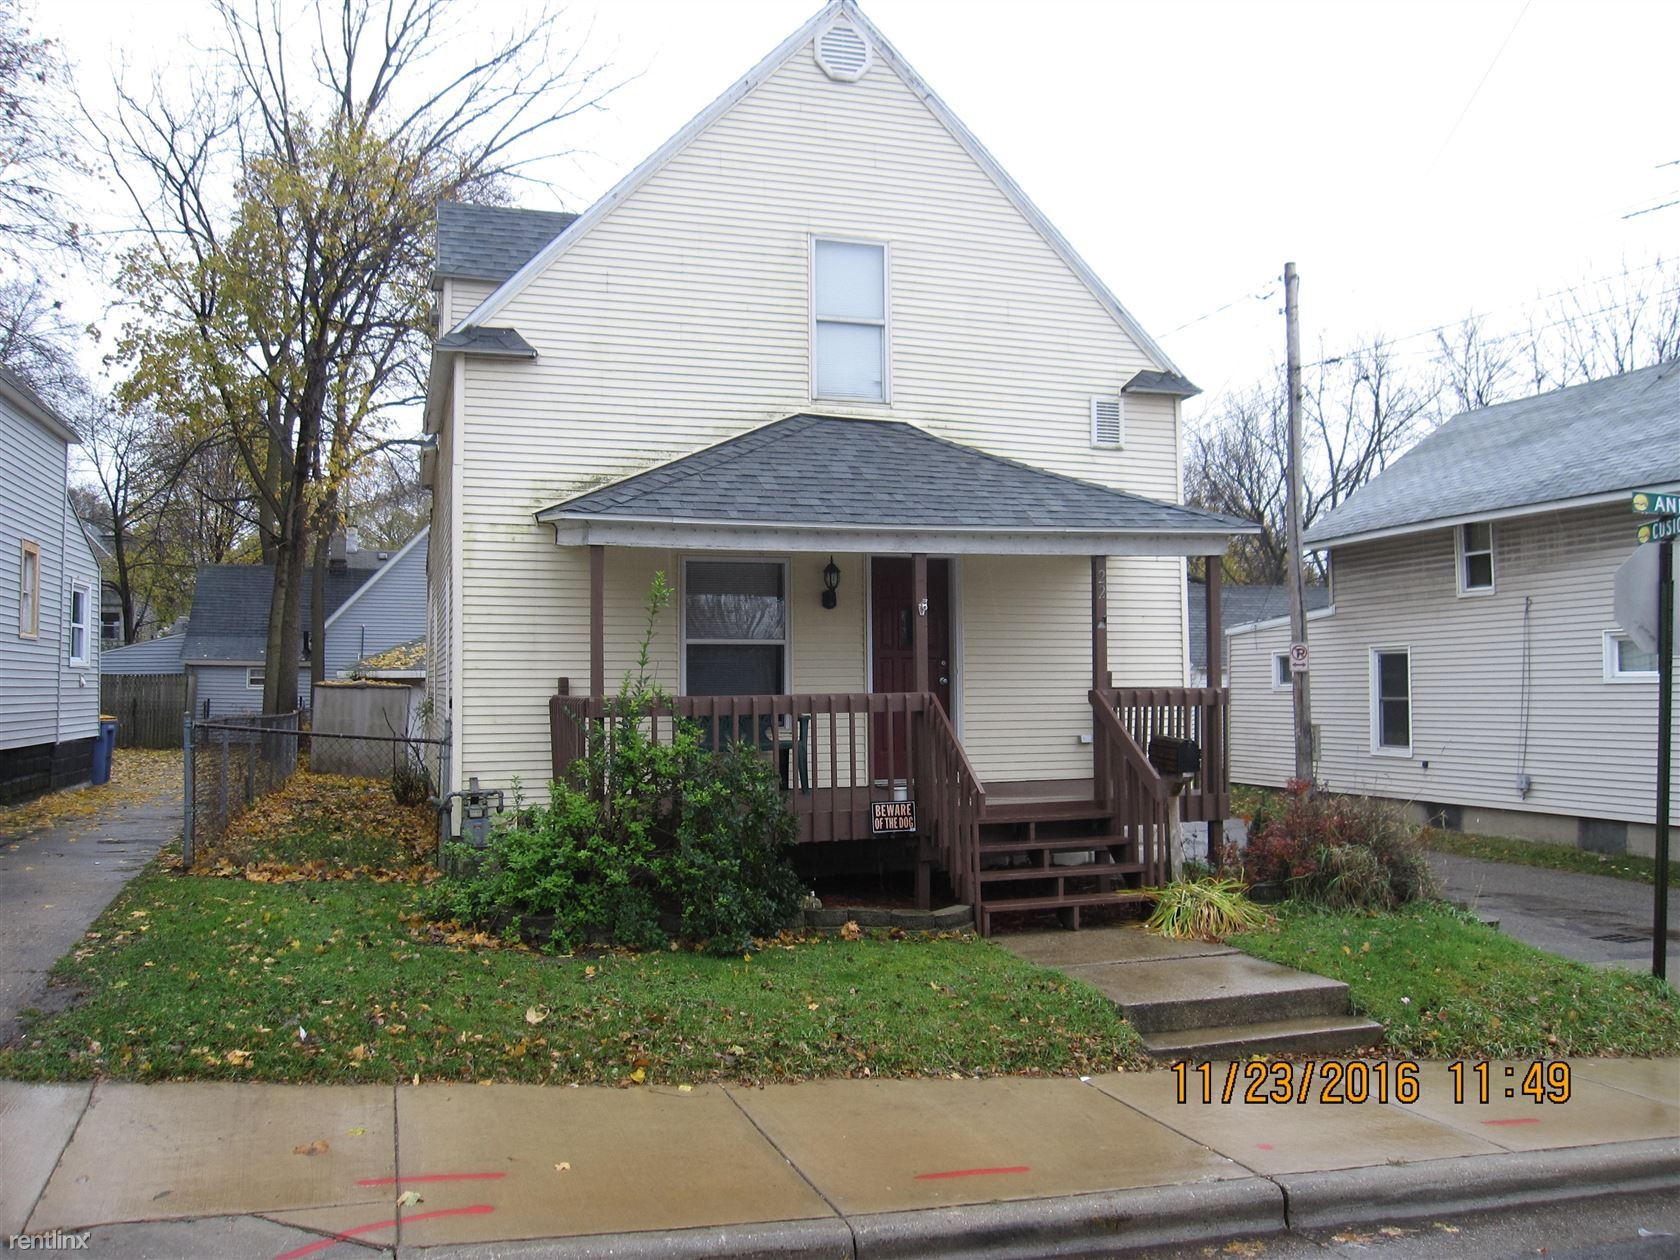 22 ann st nw grand rapids mi 49505 3 bedroom house for rent for 1 075 month zumper for 3 bedroom apartments in grand rapids mi